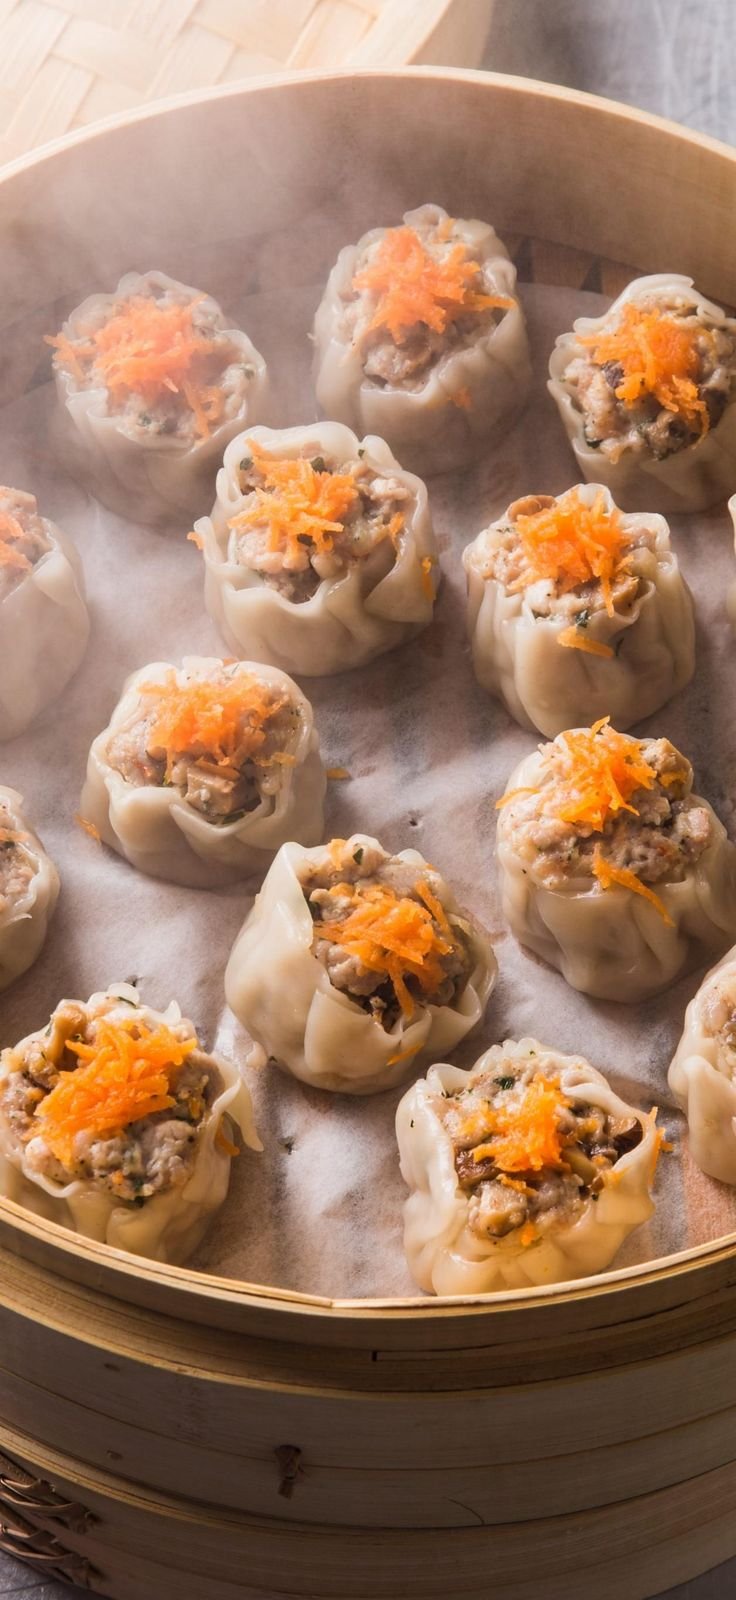 Steamed Chinese Dumplings (Shu Mai). For moist and tender meat in our shu mai recipe, we used our food processor to grind boneless country-style ribs in two batches: one chunky and one fine.